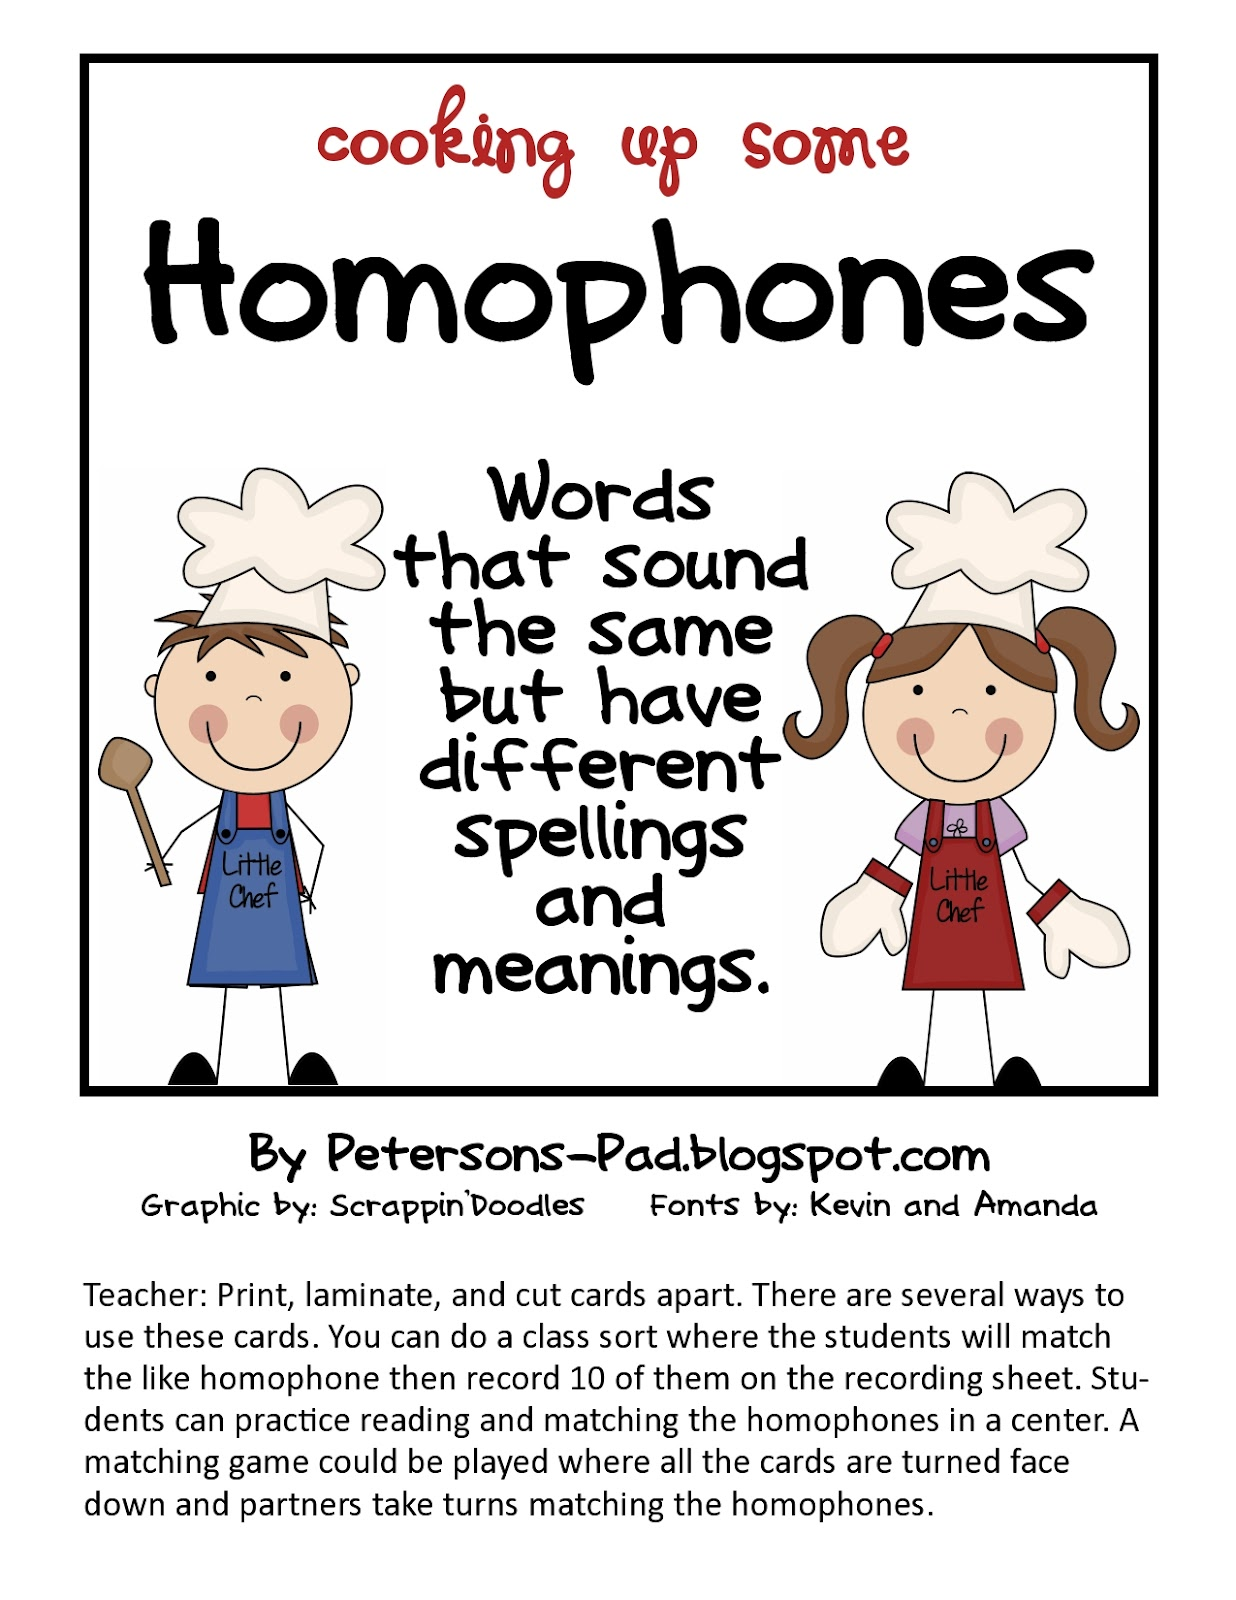 What Are Homophones Anyway